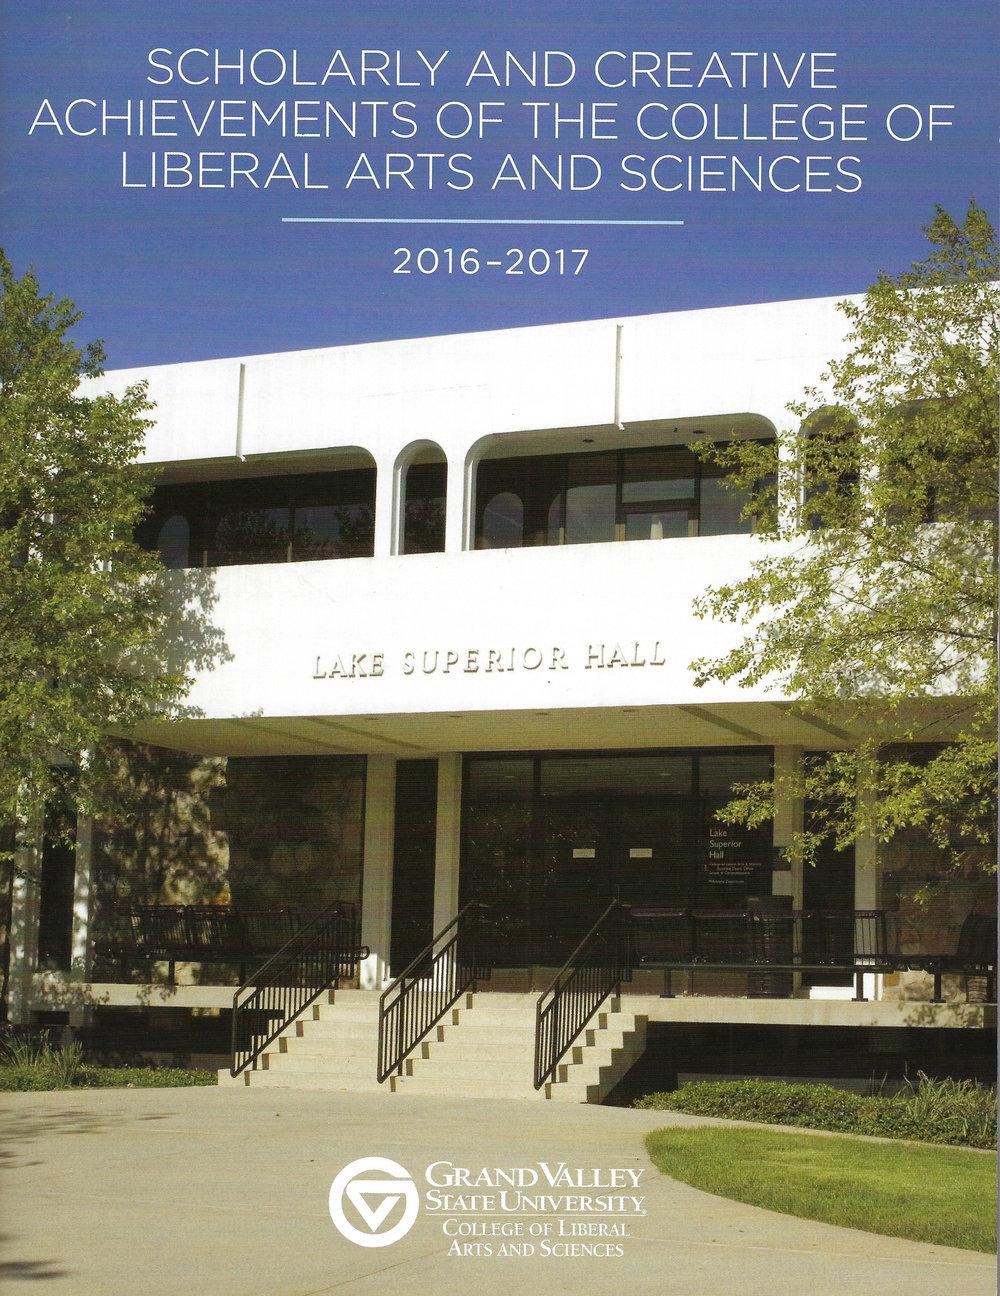 CAST Featured in GVSU's Scholarly and Creative Achievements of the College of Liberal Arts and Sciences - Being featured in this publication at GVSU is a real honor. Big thanks to Monica Johnstone, who wrote this lovely article about Renée and CAST!